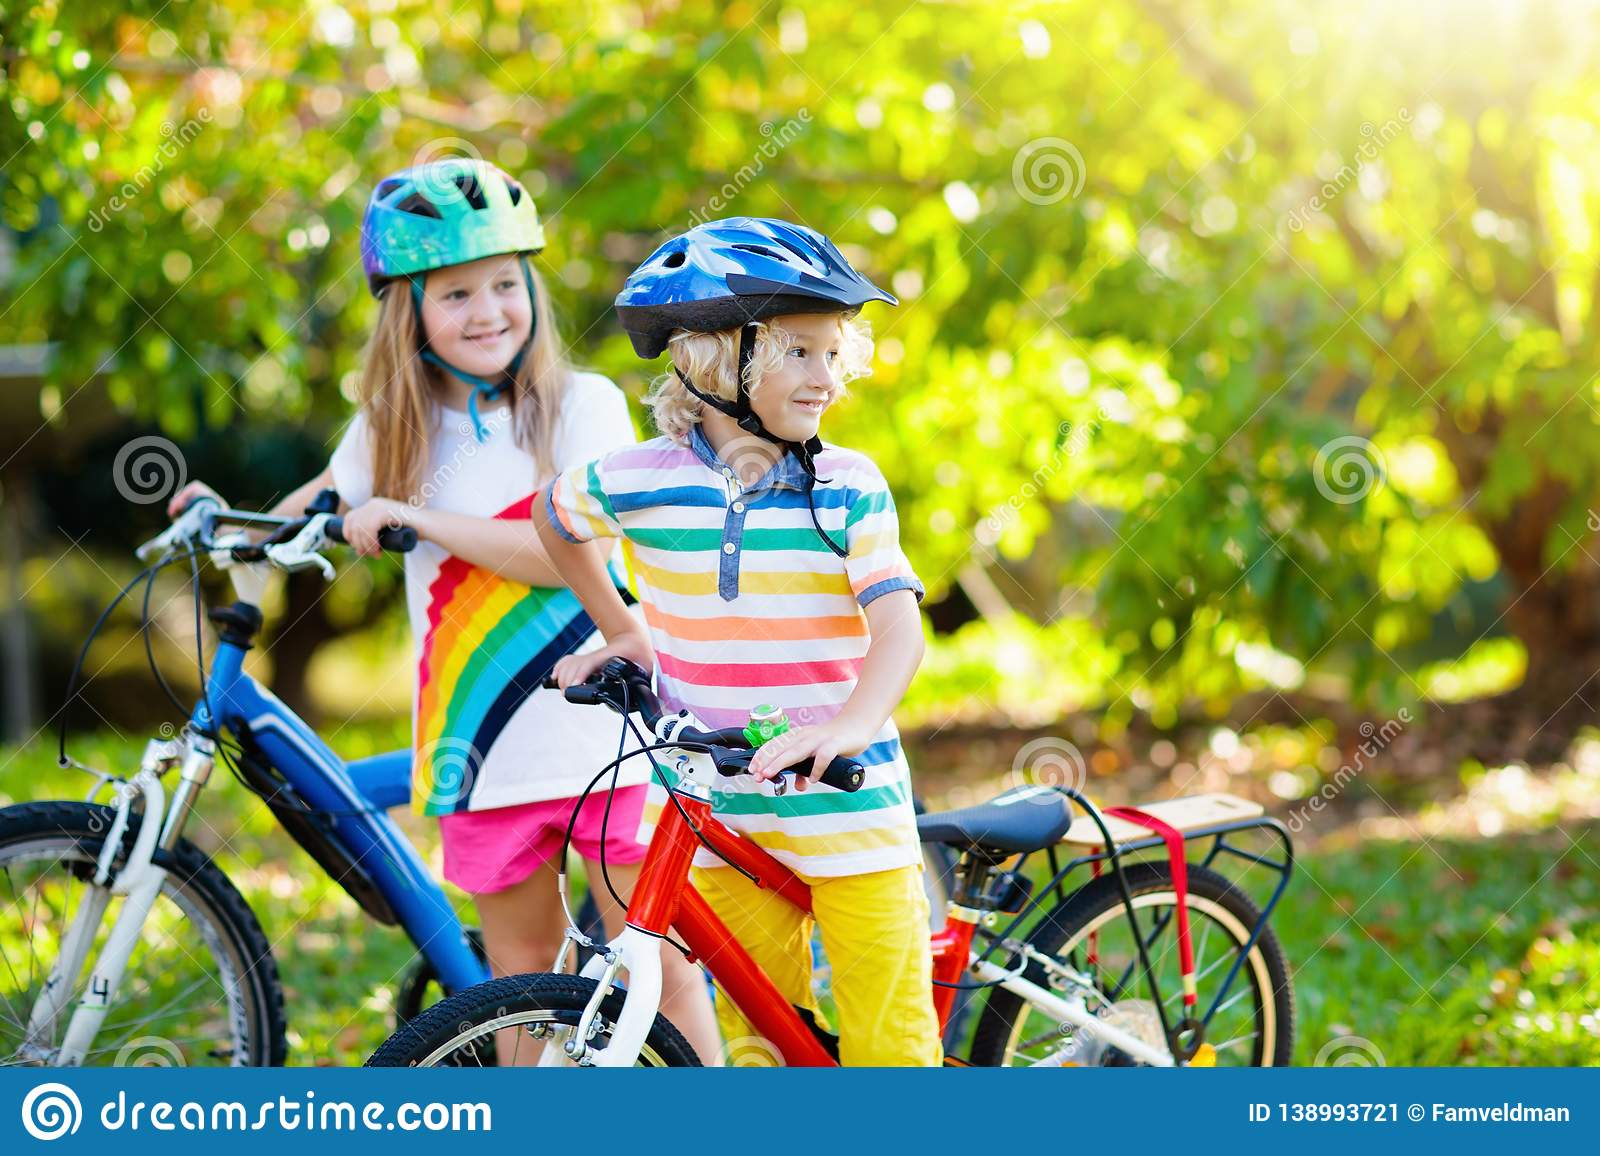 Kids On Bike  Children On Bicycle  Child Biking Stock Image - Image